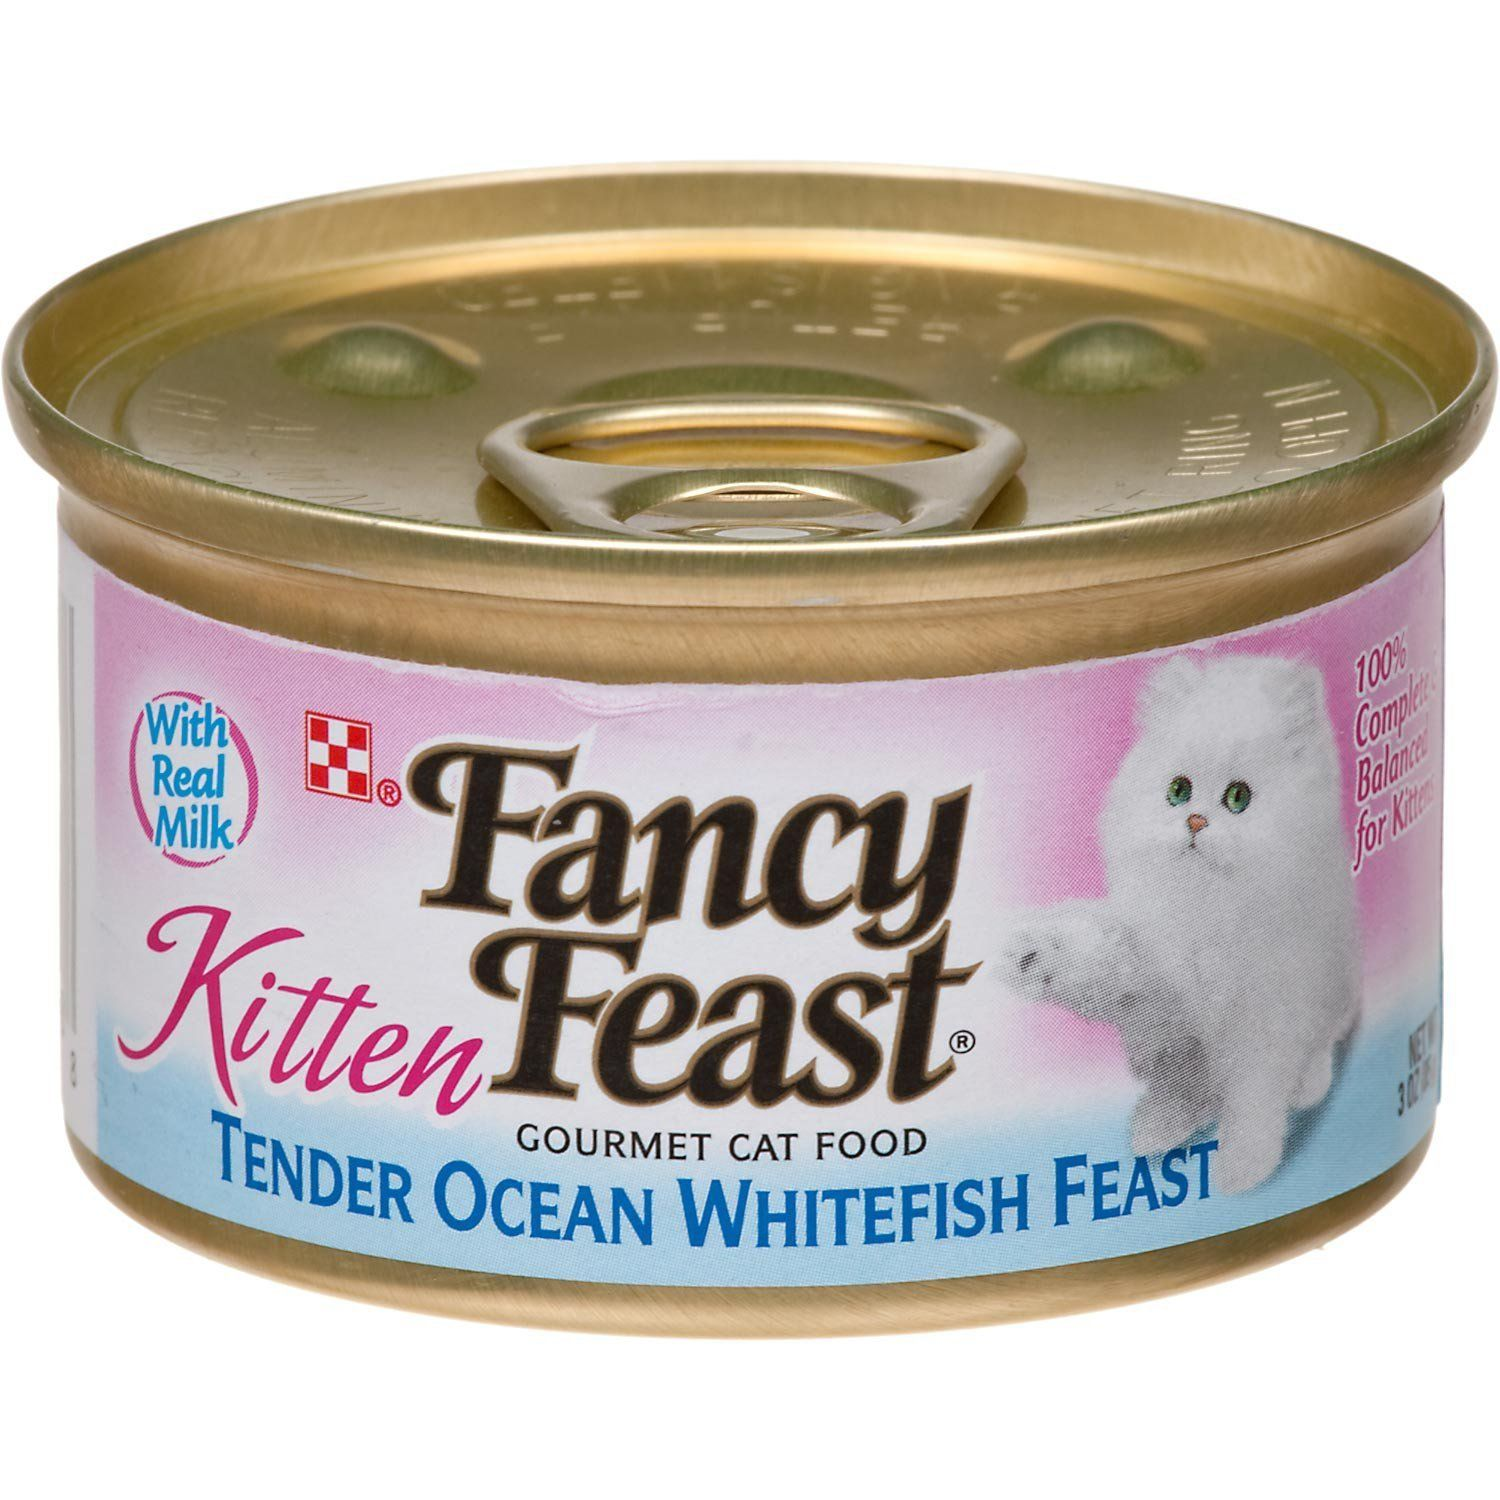 Fancy Feast Gourmet Kitten Tender Ocean Whitefish Feast Canned Cat Food 24 3oz Cans Startling Review Avail With Images Fancy Feast Cat Food Kitten Food Canned Cat Food